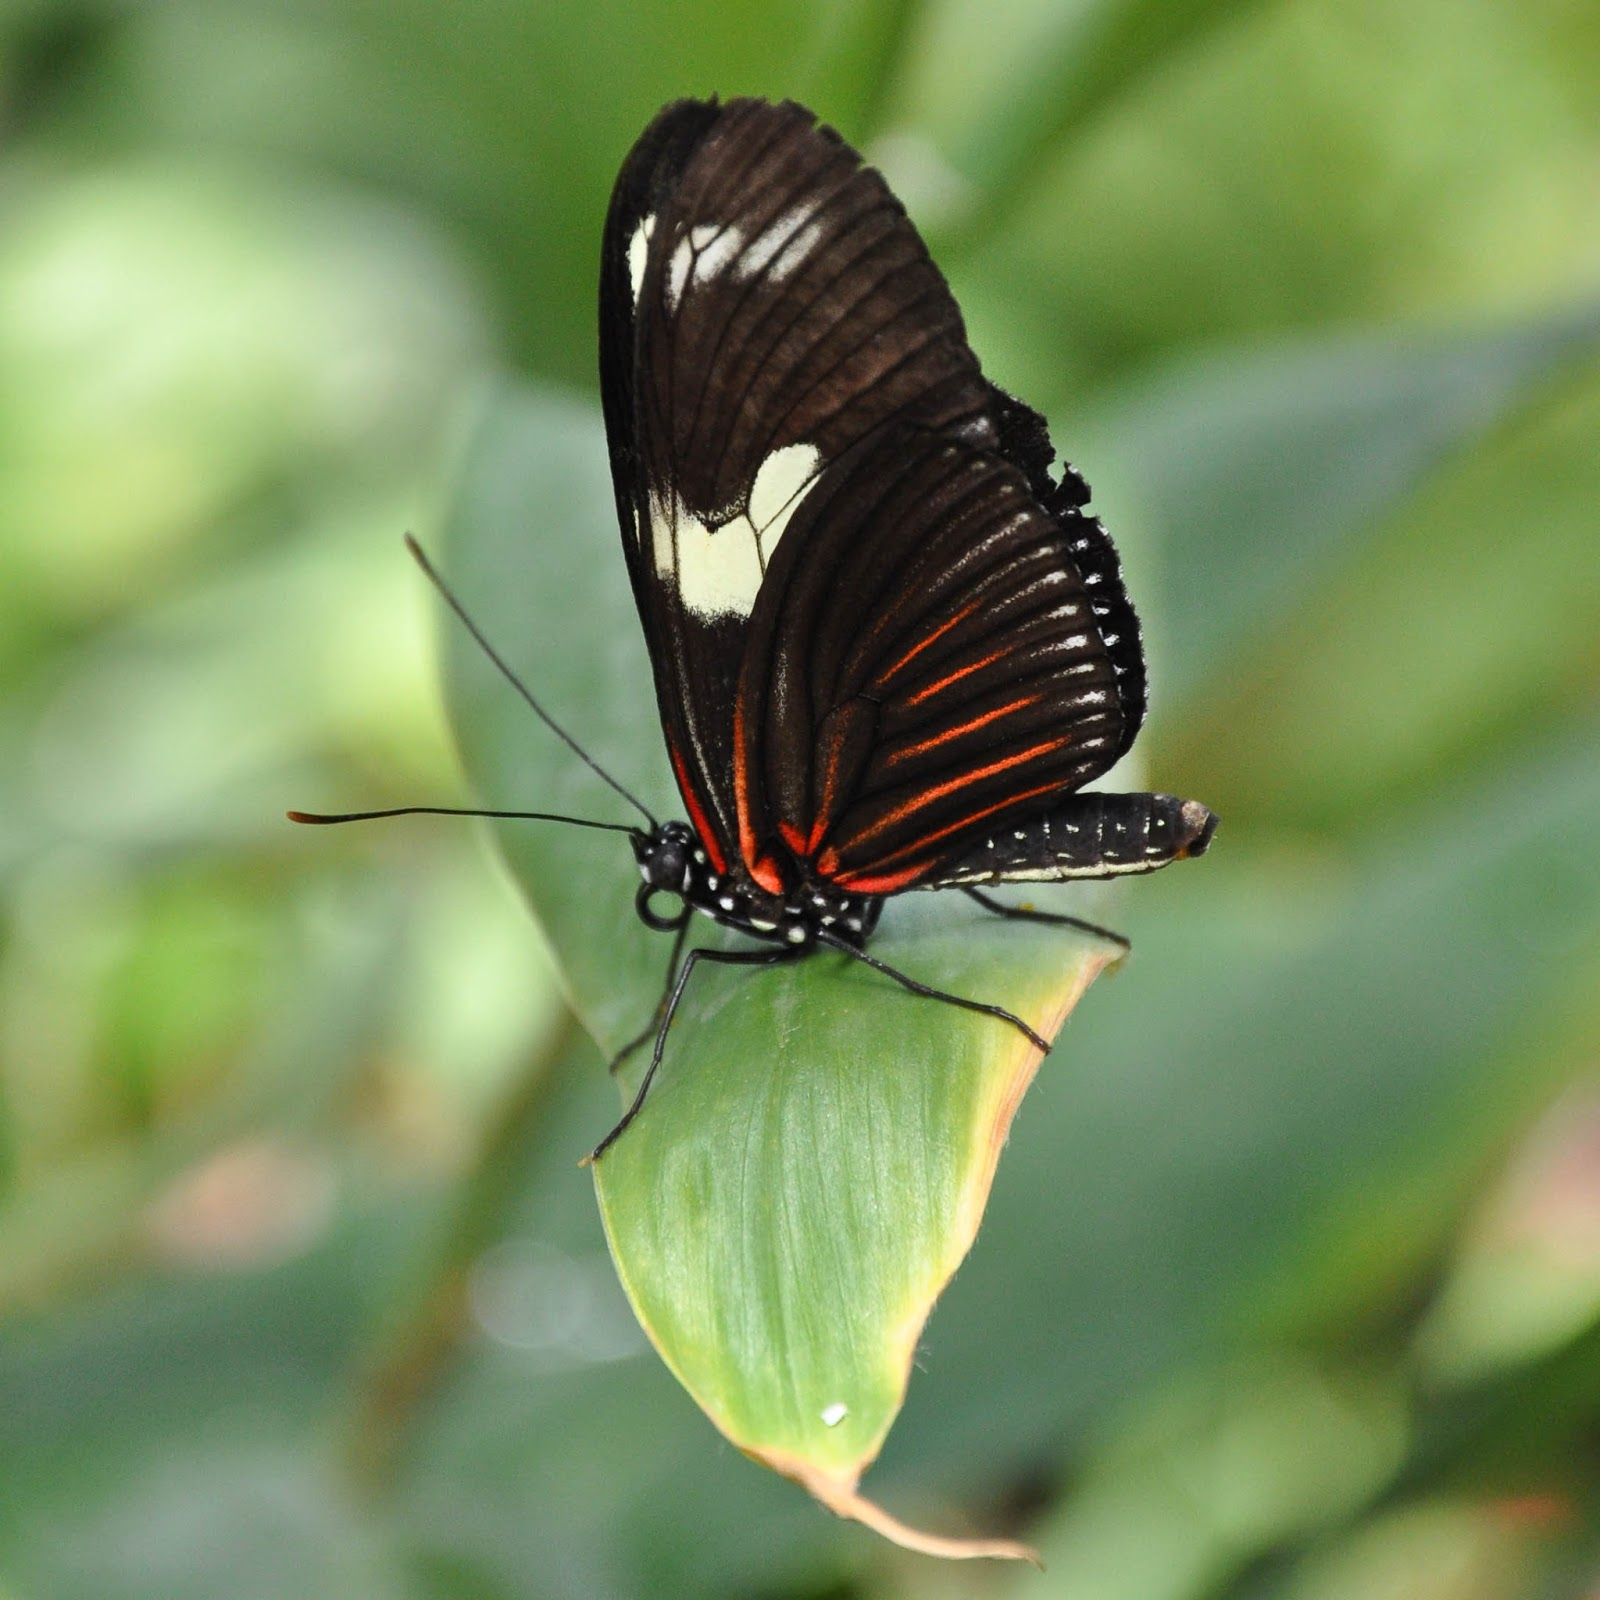 Black and red butterfly, The Butterfly World Project, St. Albans, Herts, UK